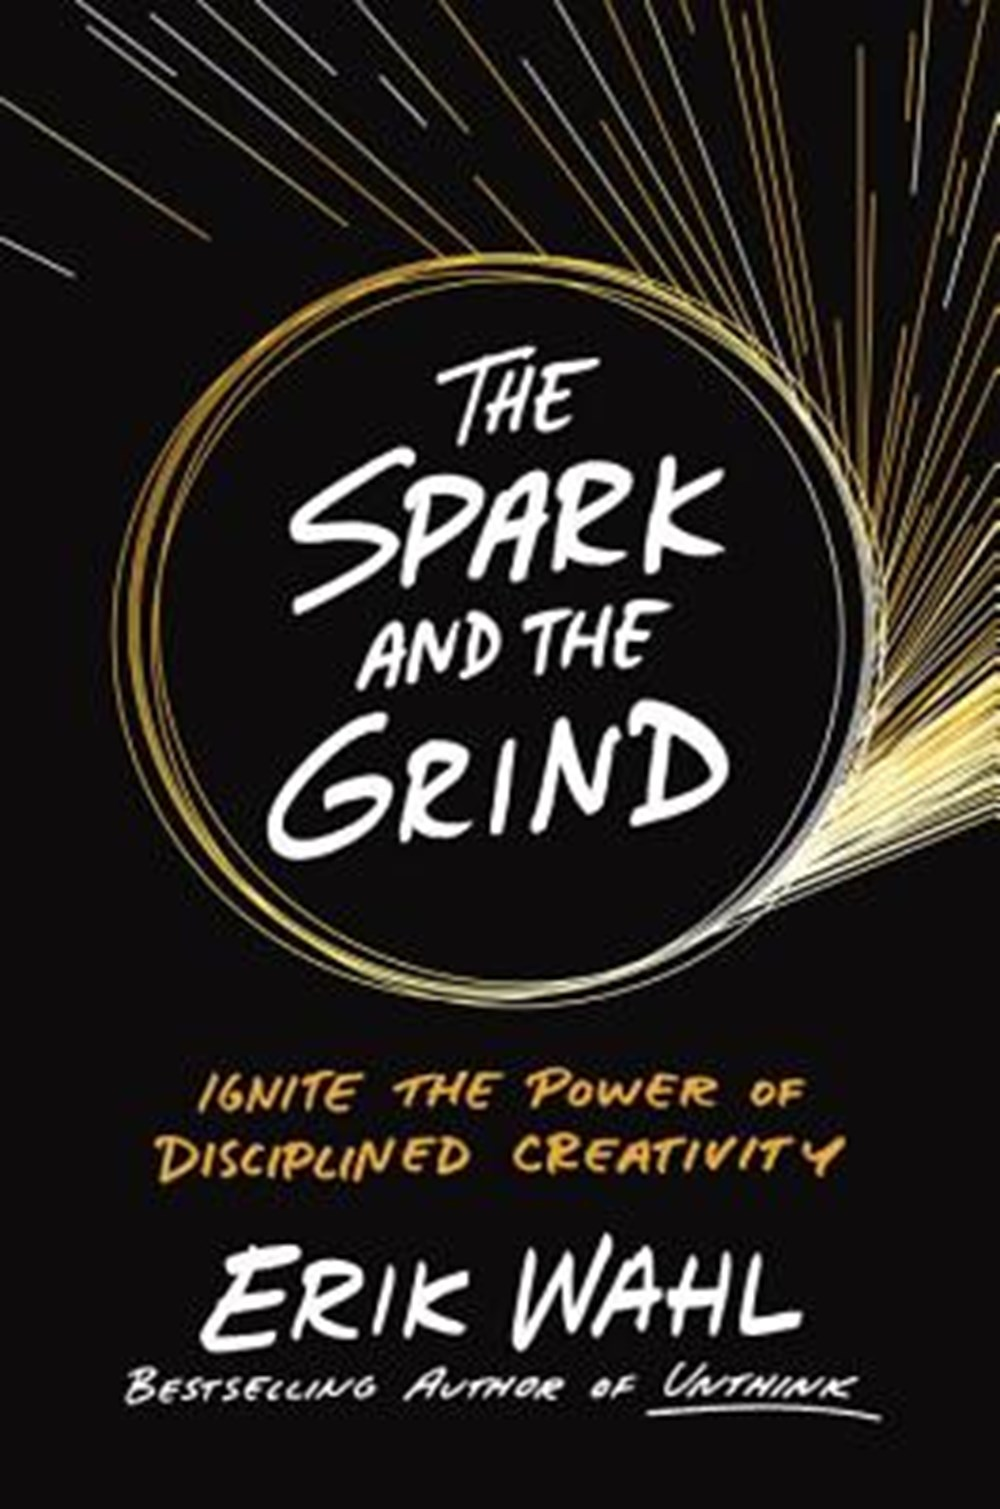 Spark and the Grind Ignite the Power of Disciplined Creativity